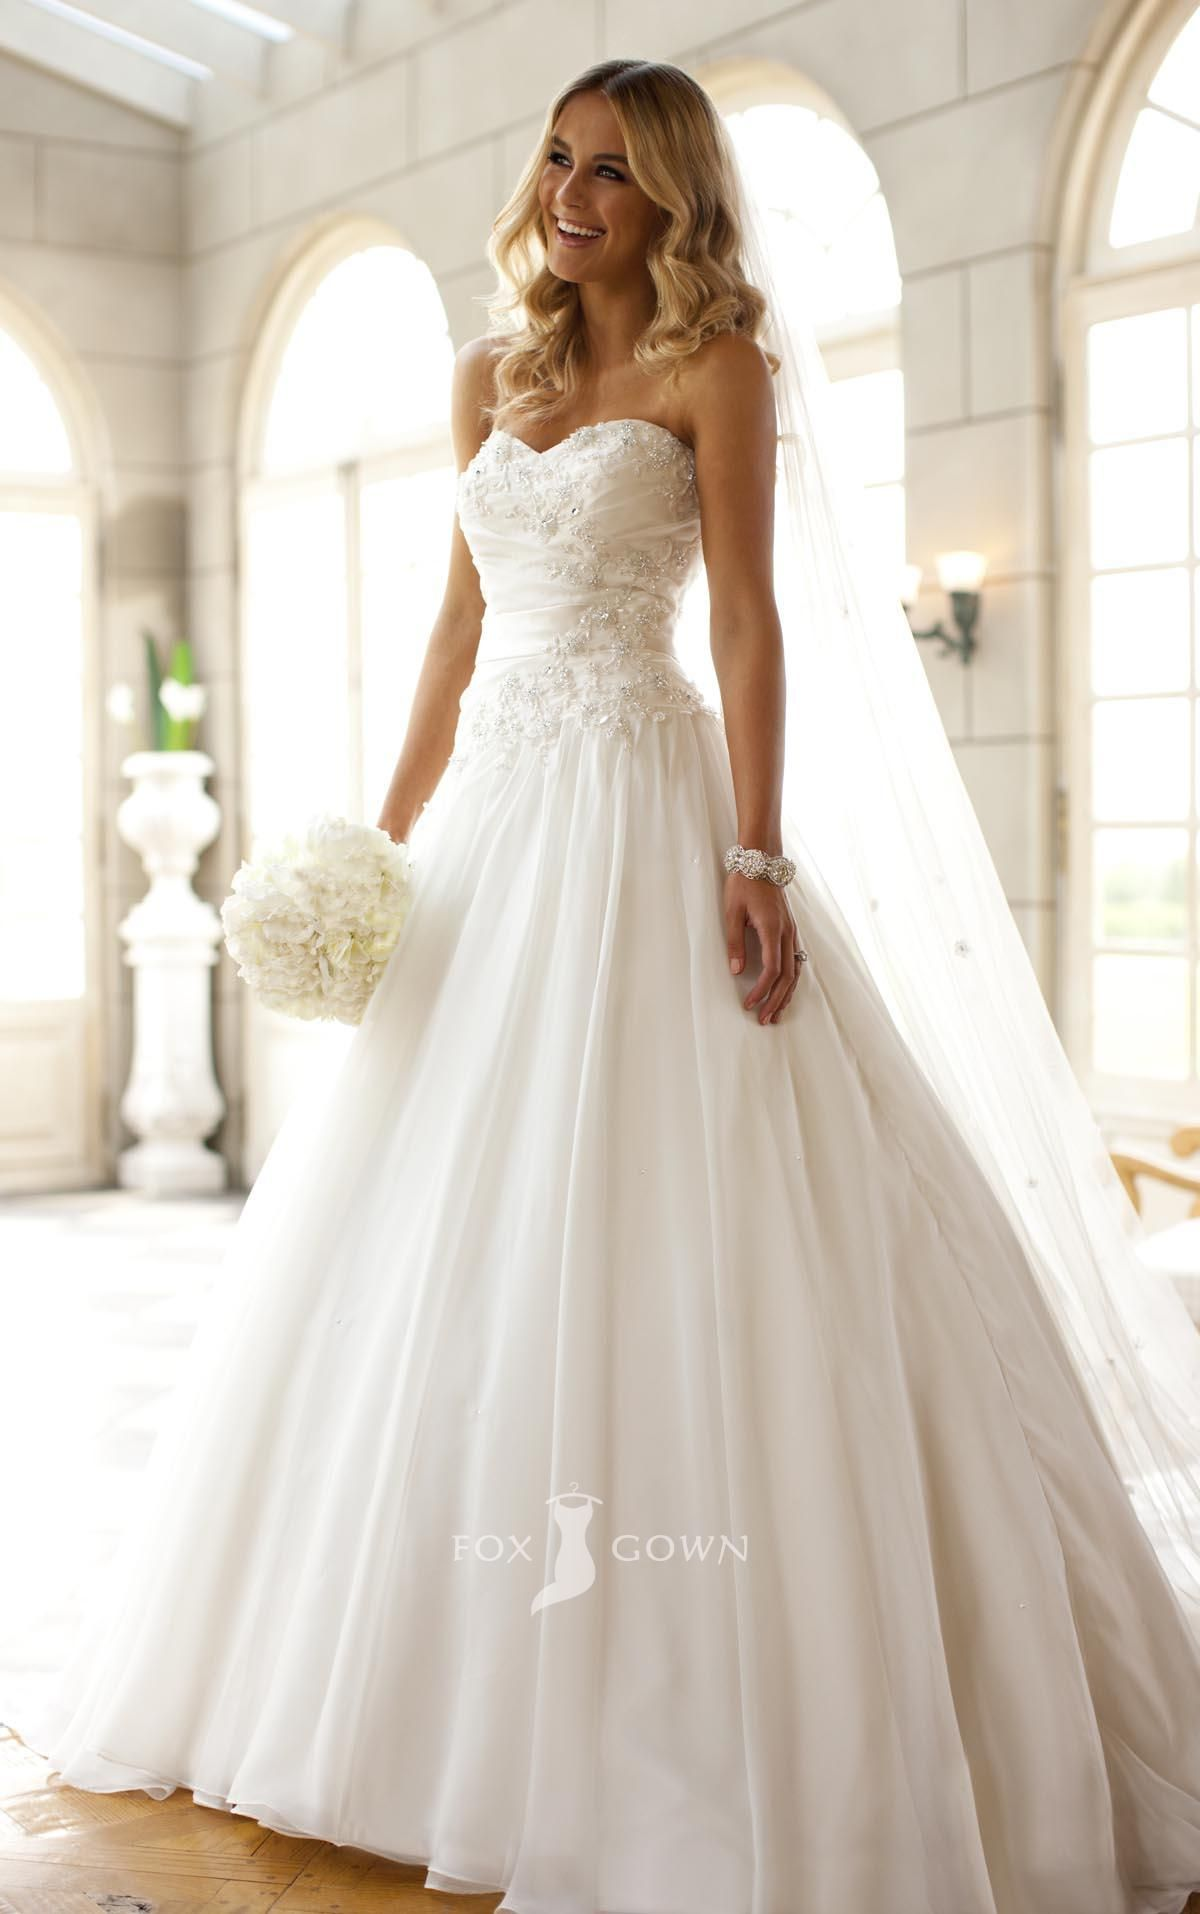 369 00 Lovely Strapless Sweetheart Ball Gown Beaded Embroidered Bodice Lace Up Back Chapel Train Organza Wedding